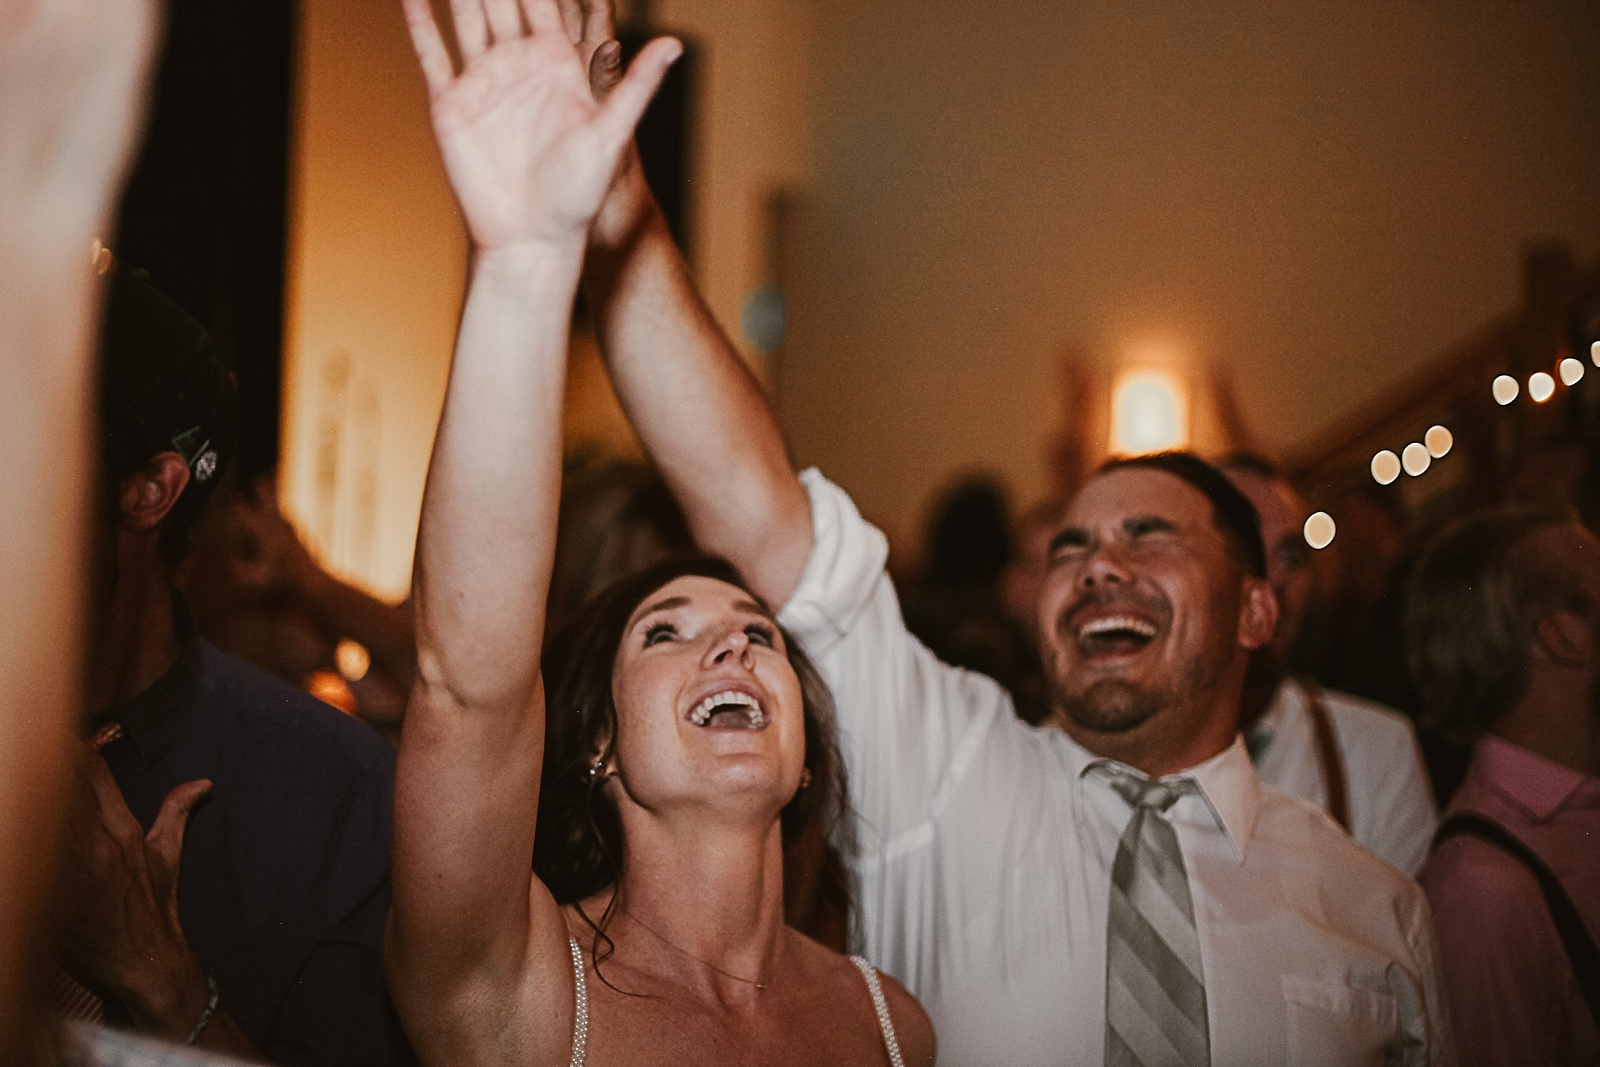 bride and groom dancing, reception at silverthorne pavillion, silverthorne pavillion wedding, silverthorne pavillion wedding photographer, silverthorne colorado wedding photographer